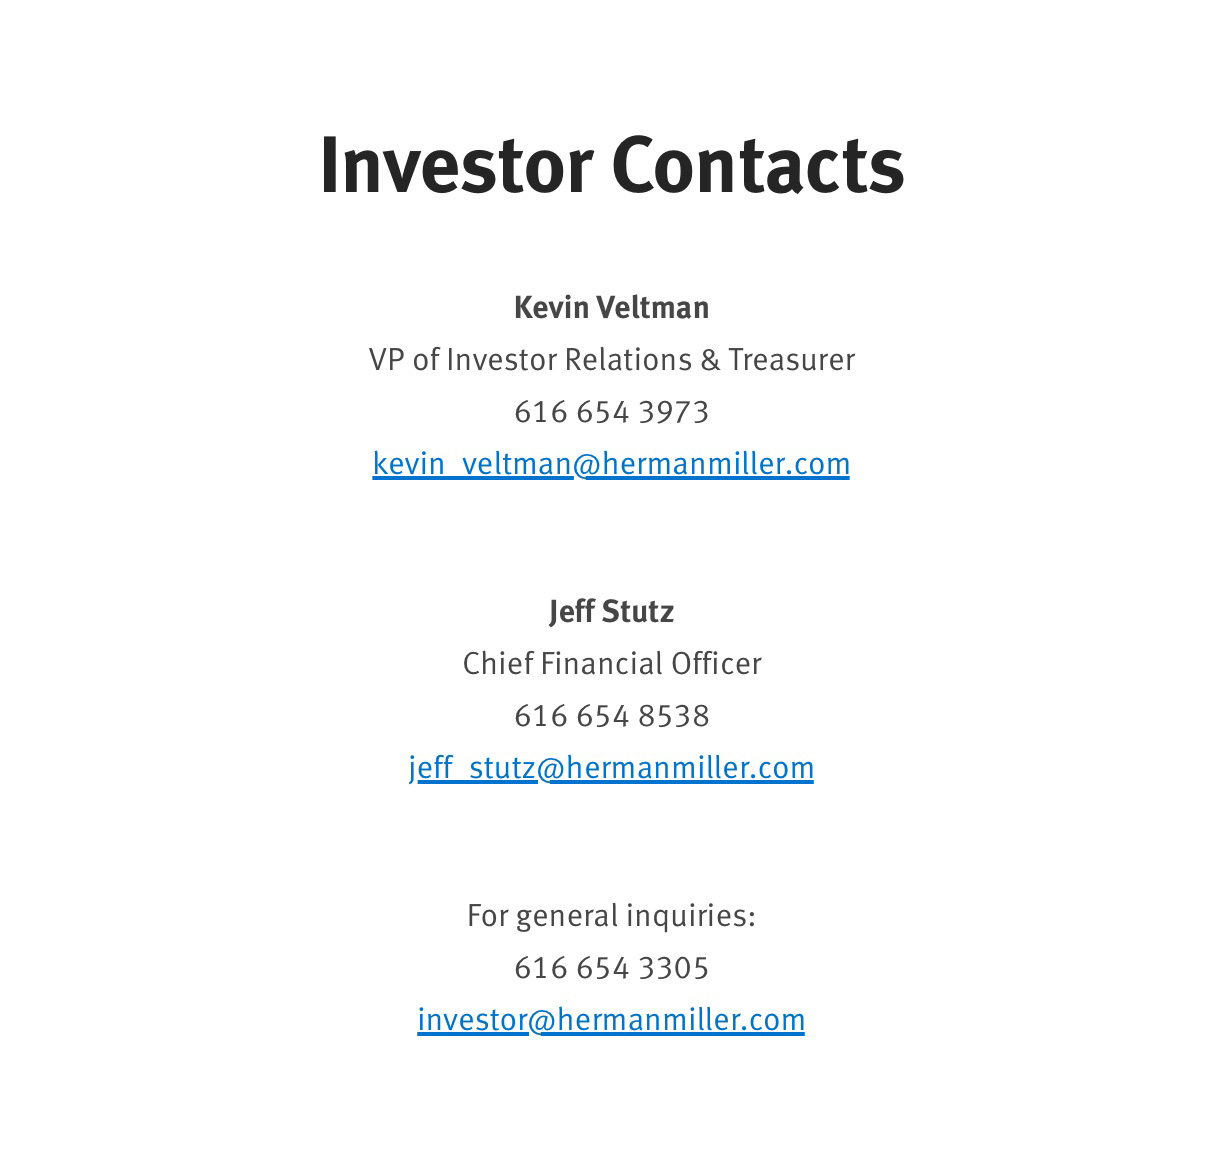 Investor Contacts 